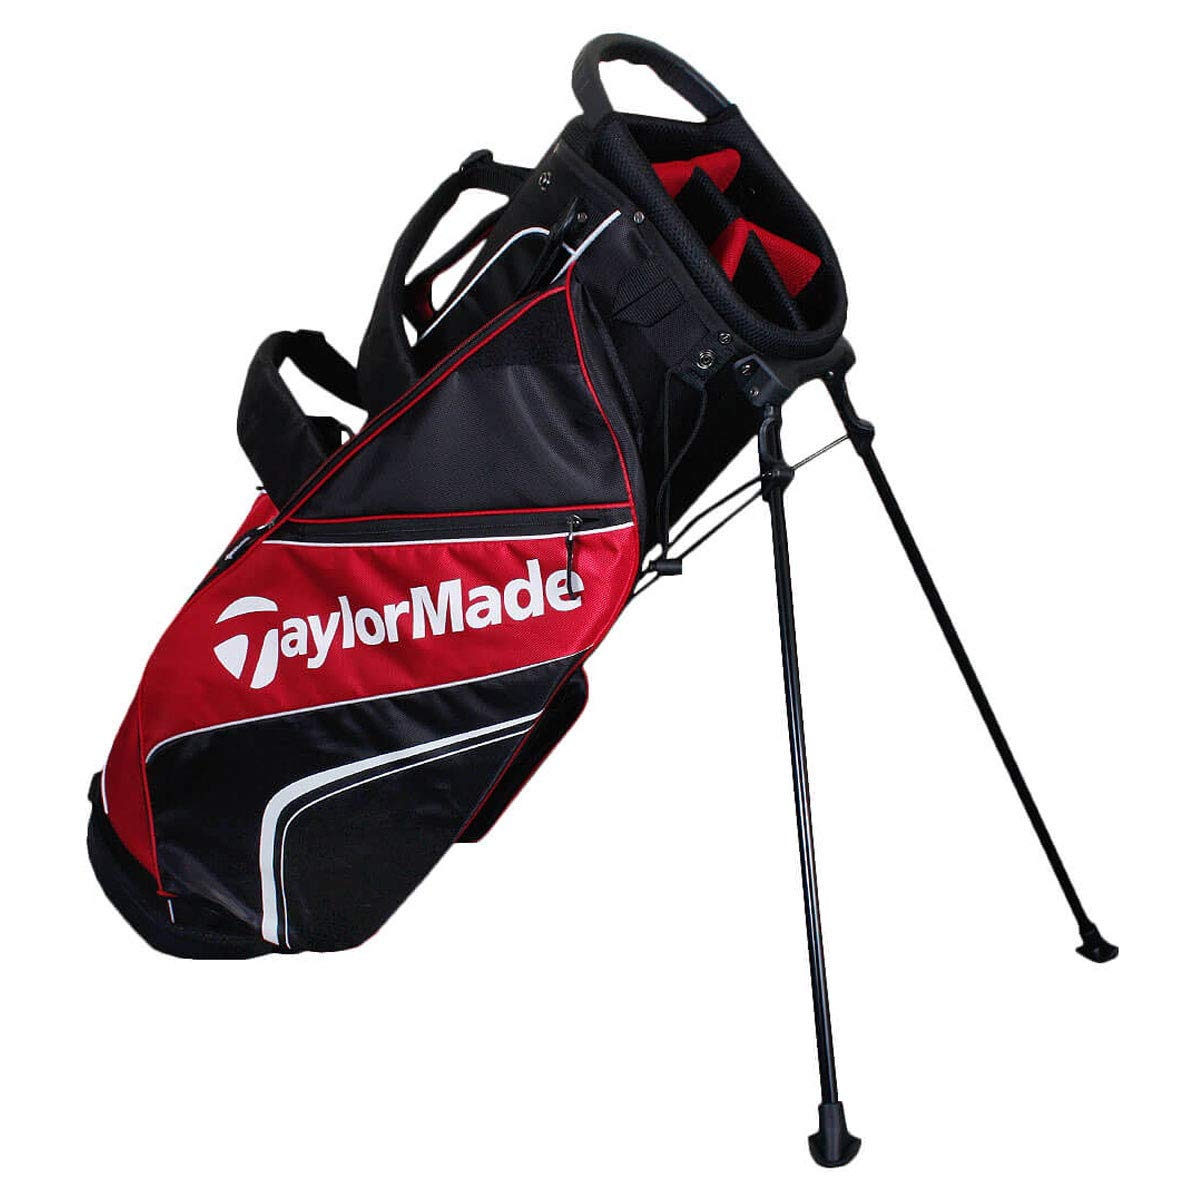 Palos de golf taylor made